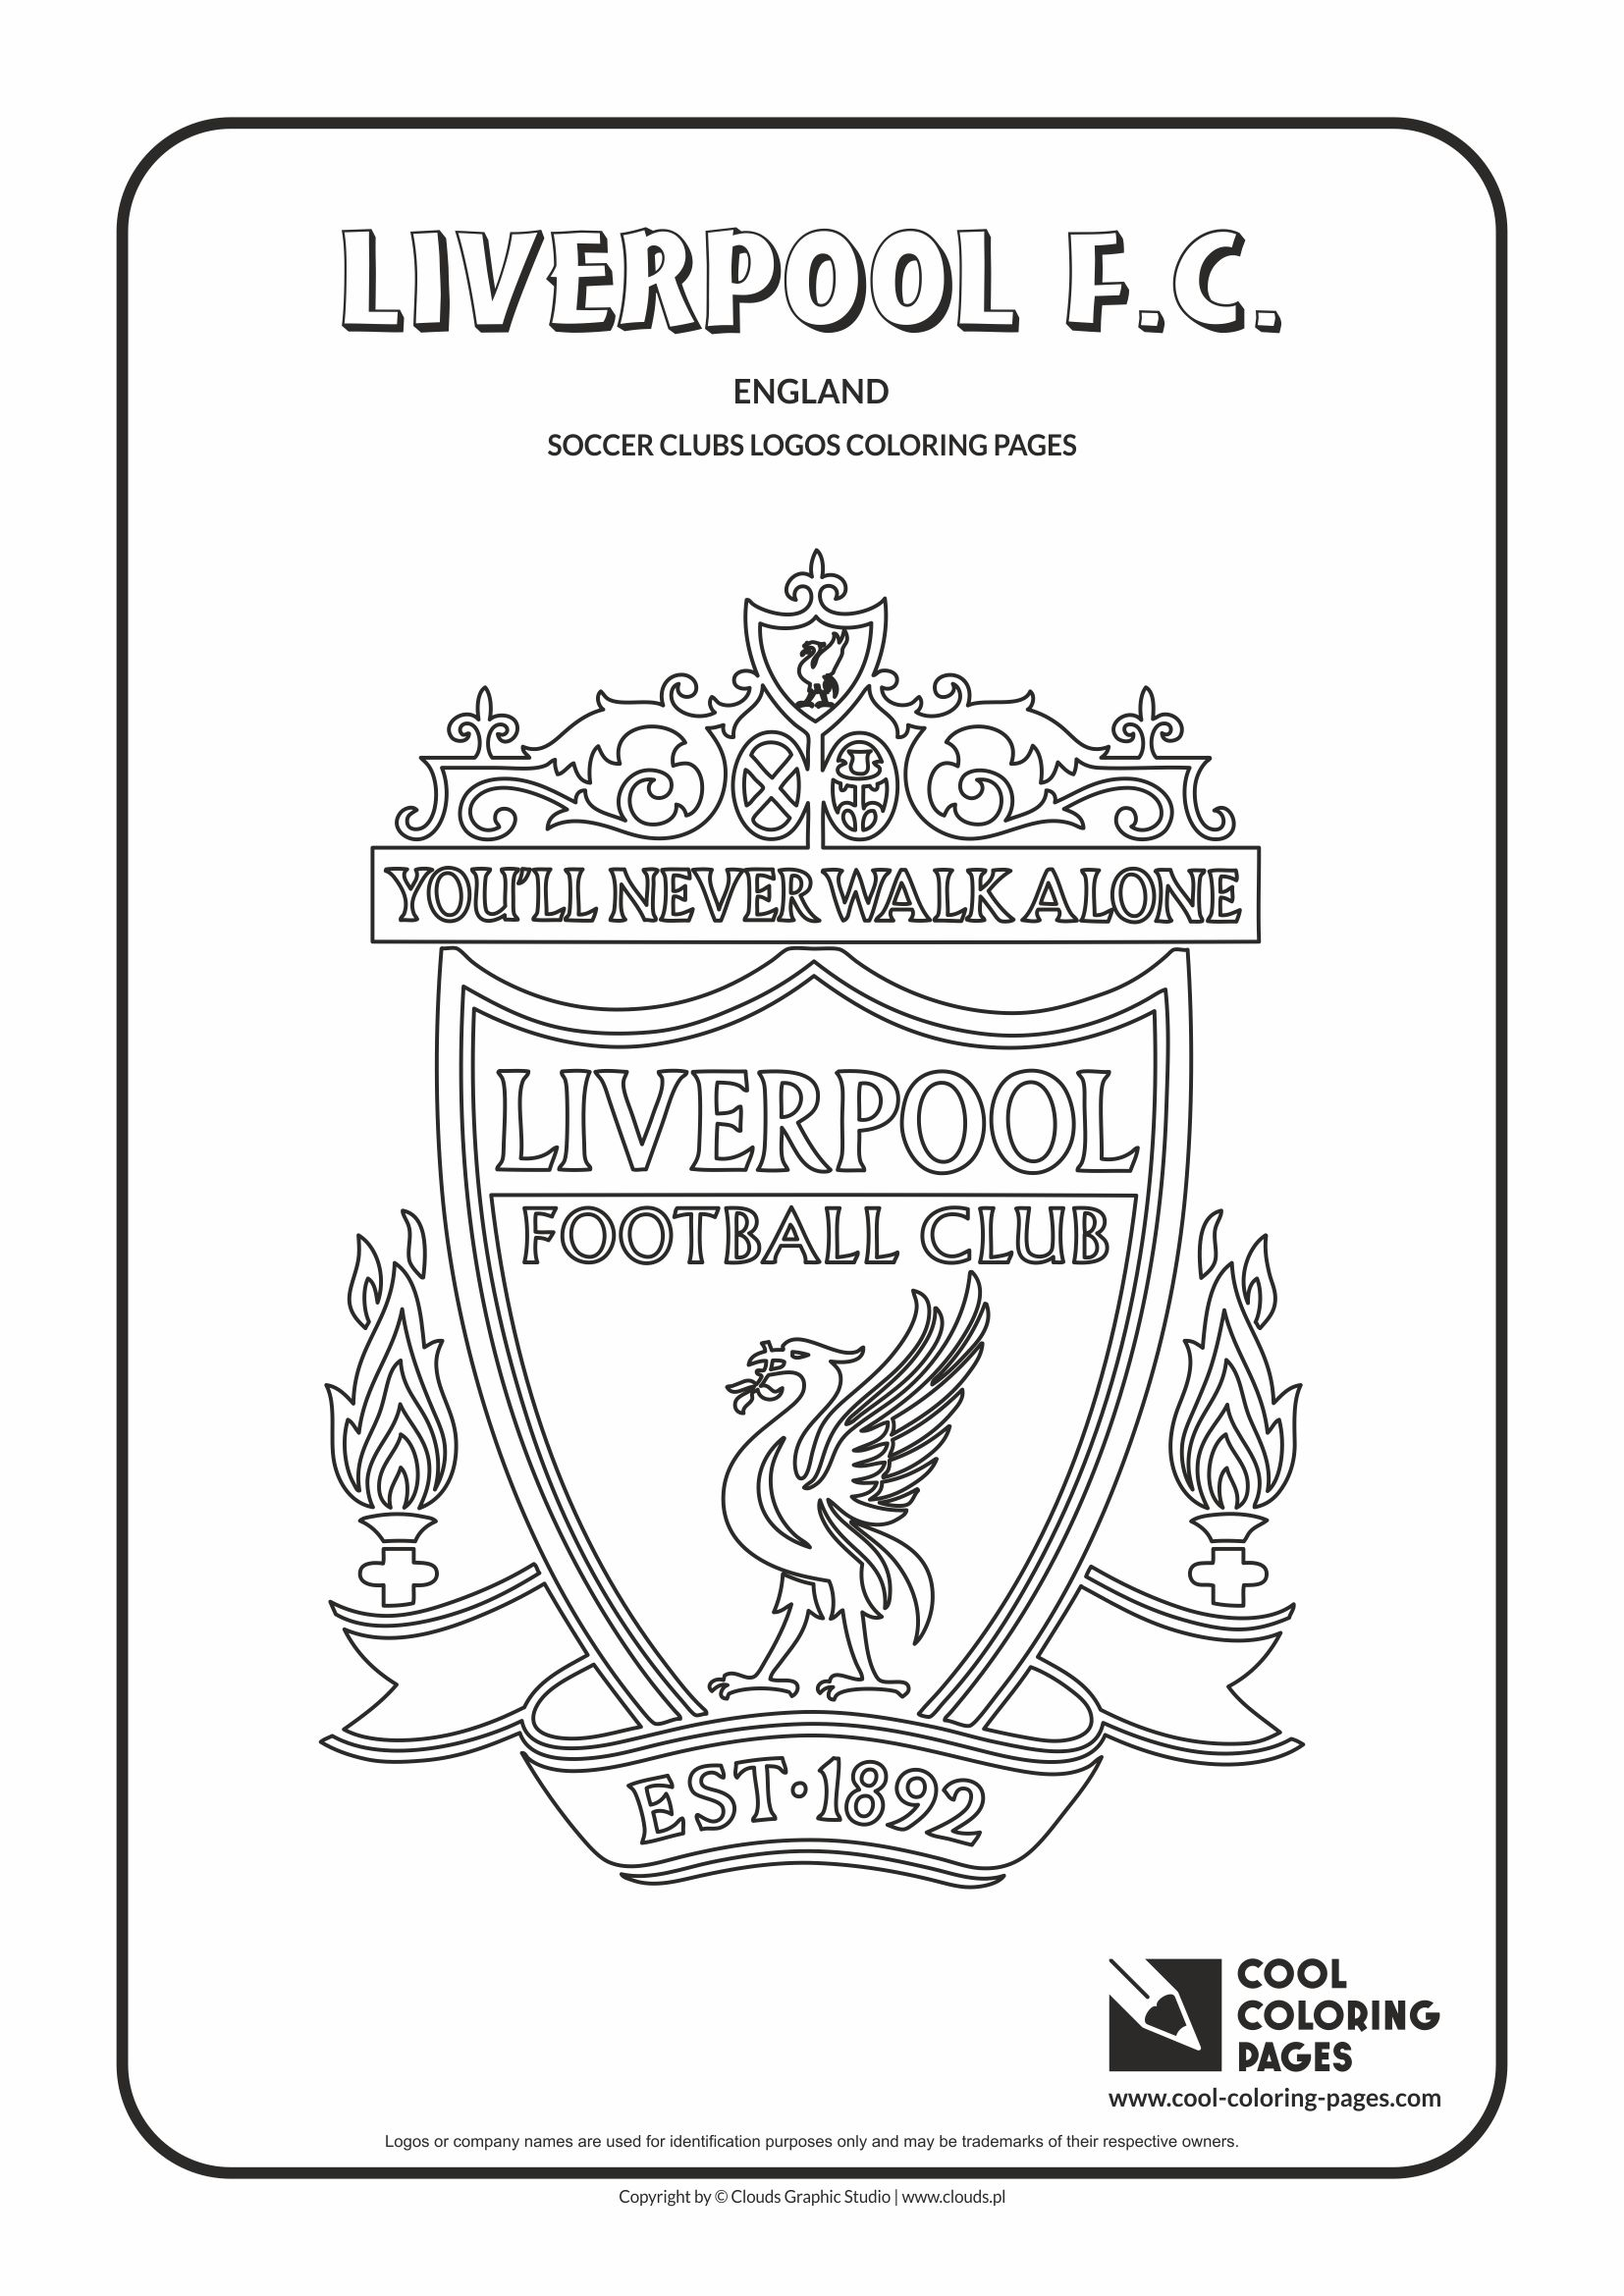 Uncategorized Coloring Pages Football Teams soccer clubs logos cool coloring pages liverpool f c logo page with colouring page